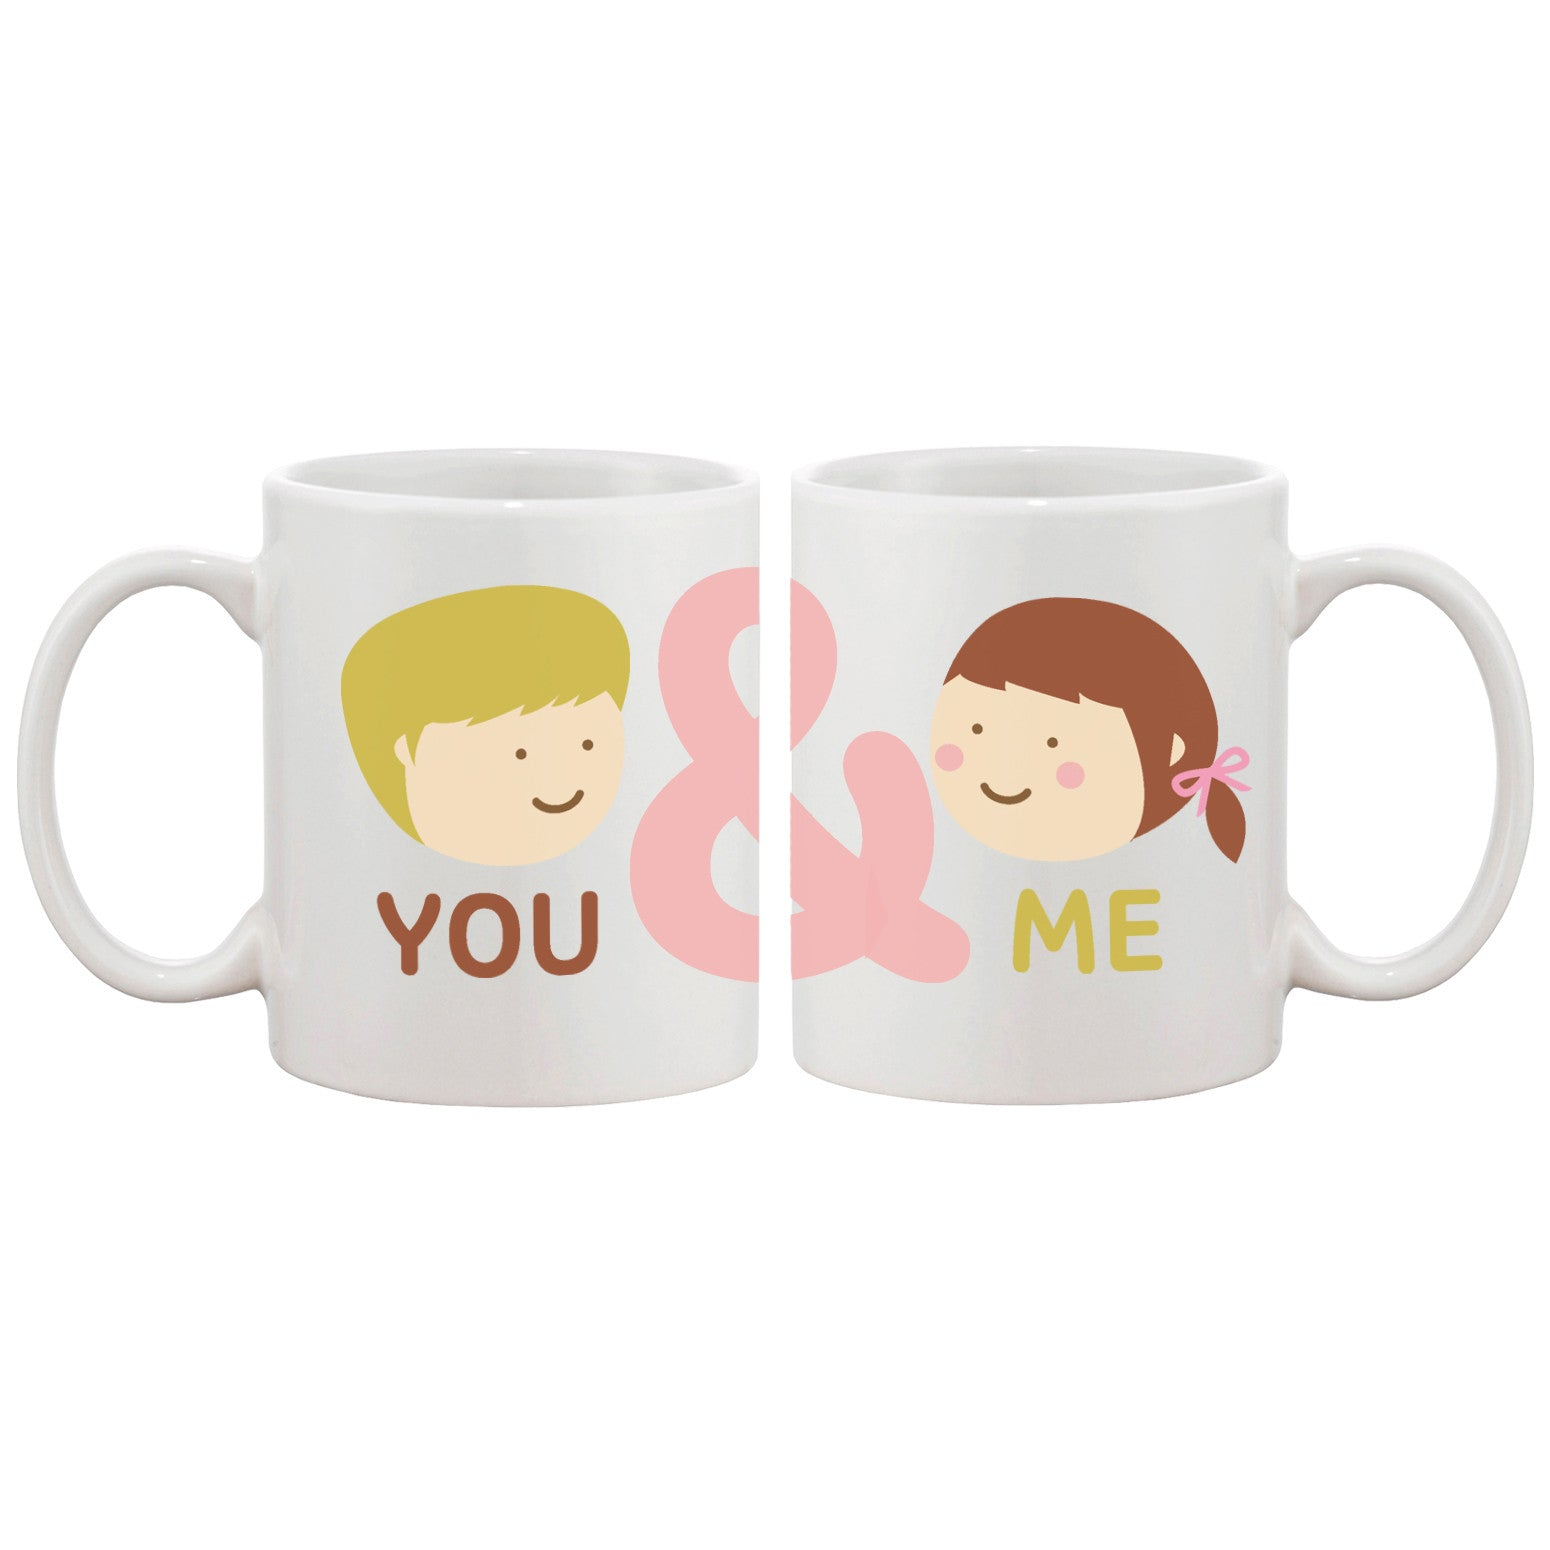 You And Me Matching Couple Mugs Cute Graphic Design Ceramic Coffee Mug 365 In Love Matching Gifts Ideas